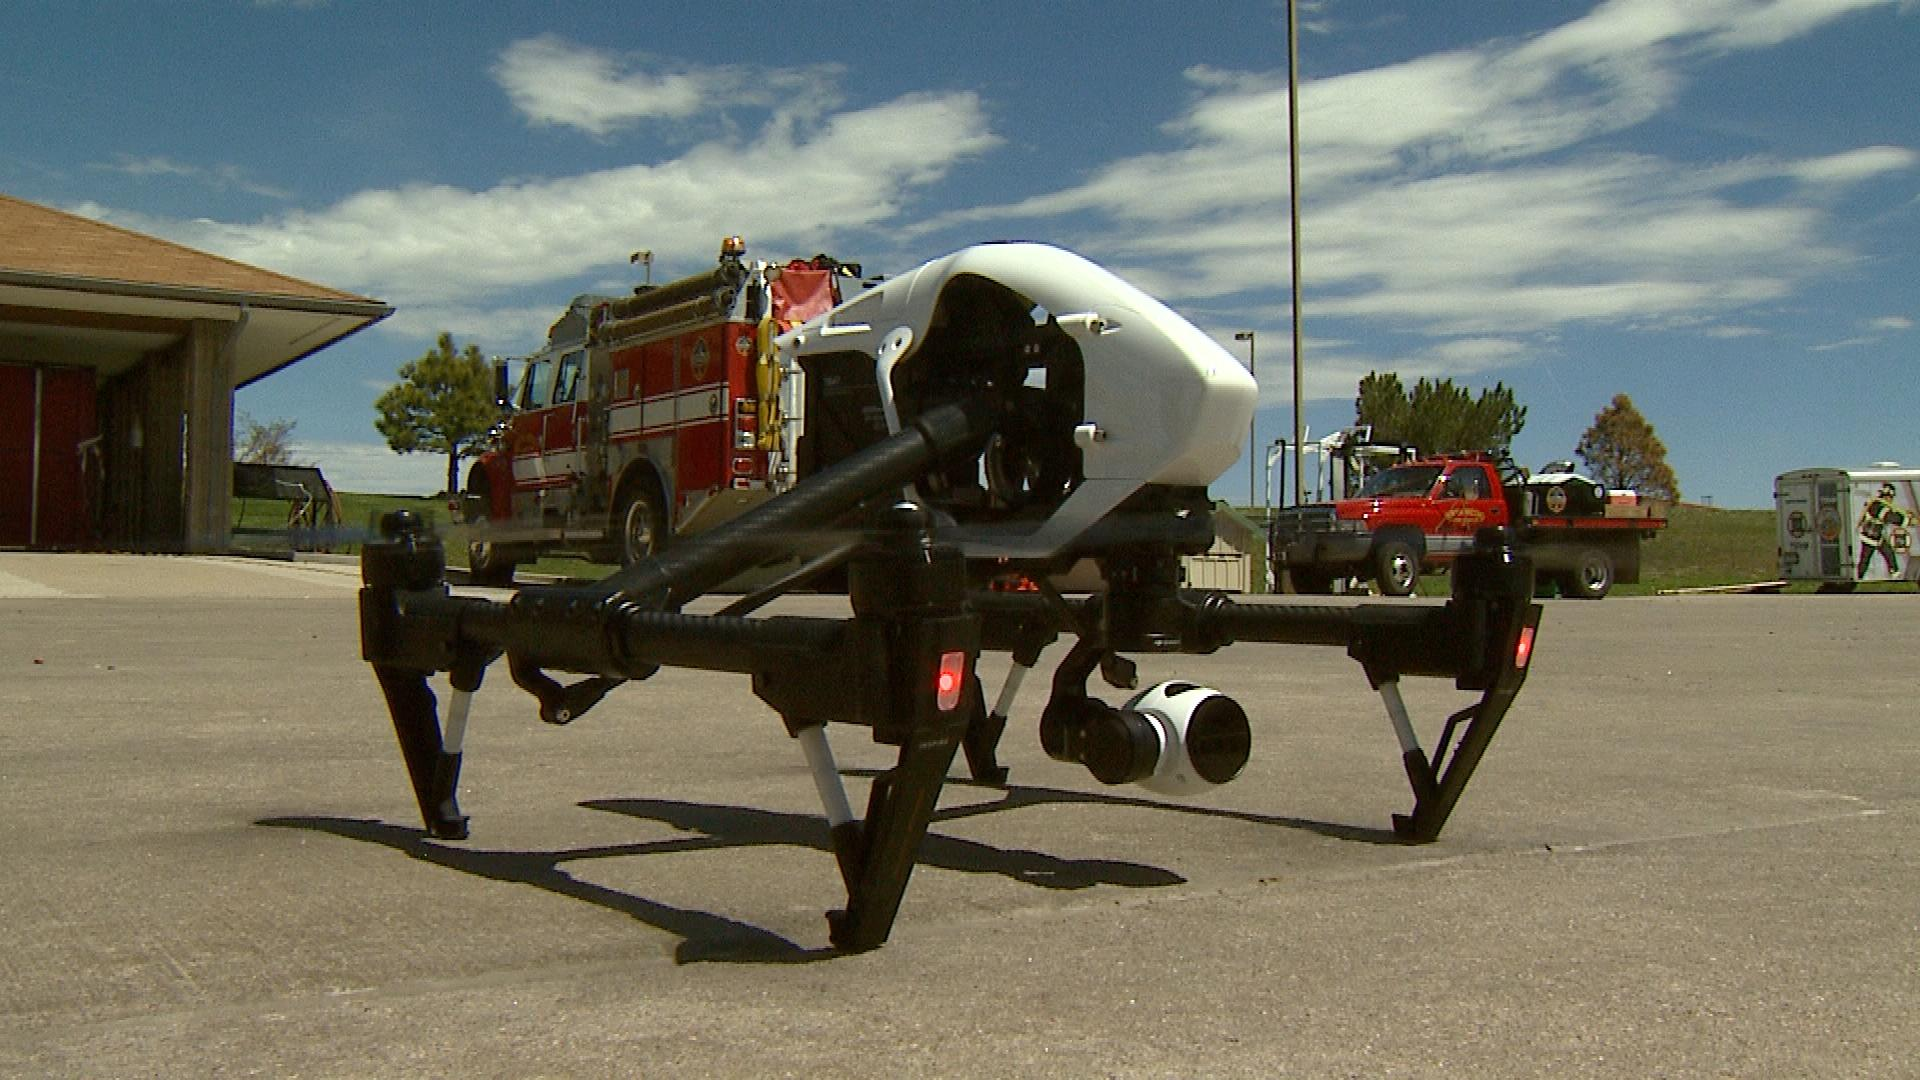 The South Metro Fire Rescue Authority drone (credit: CBS)